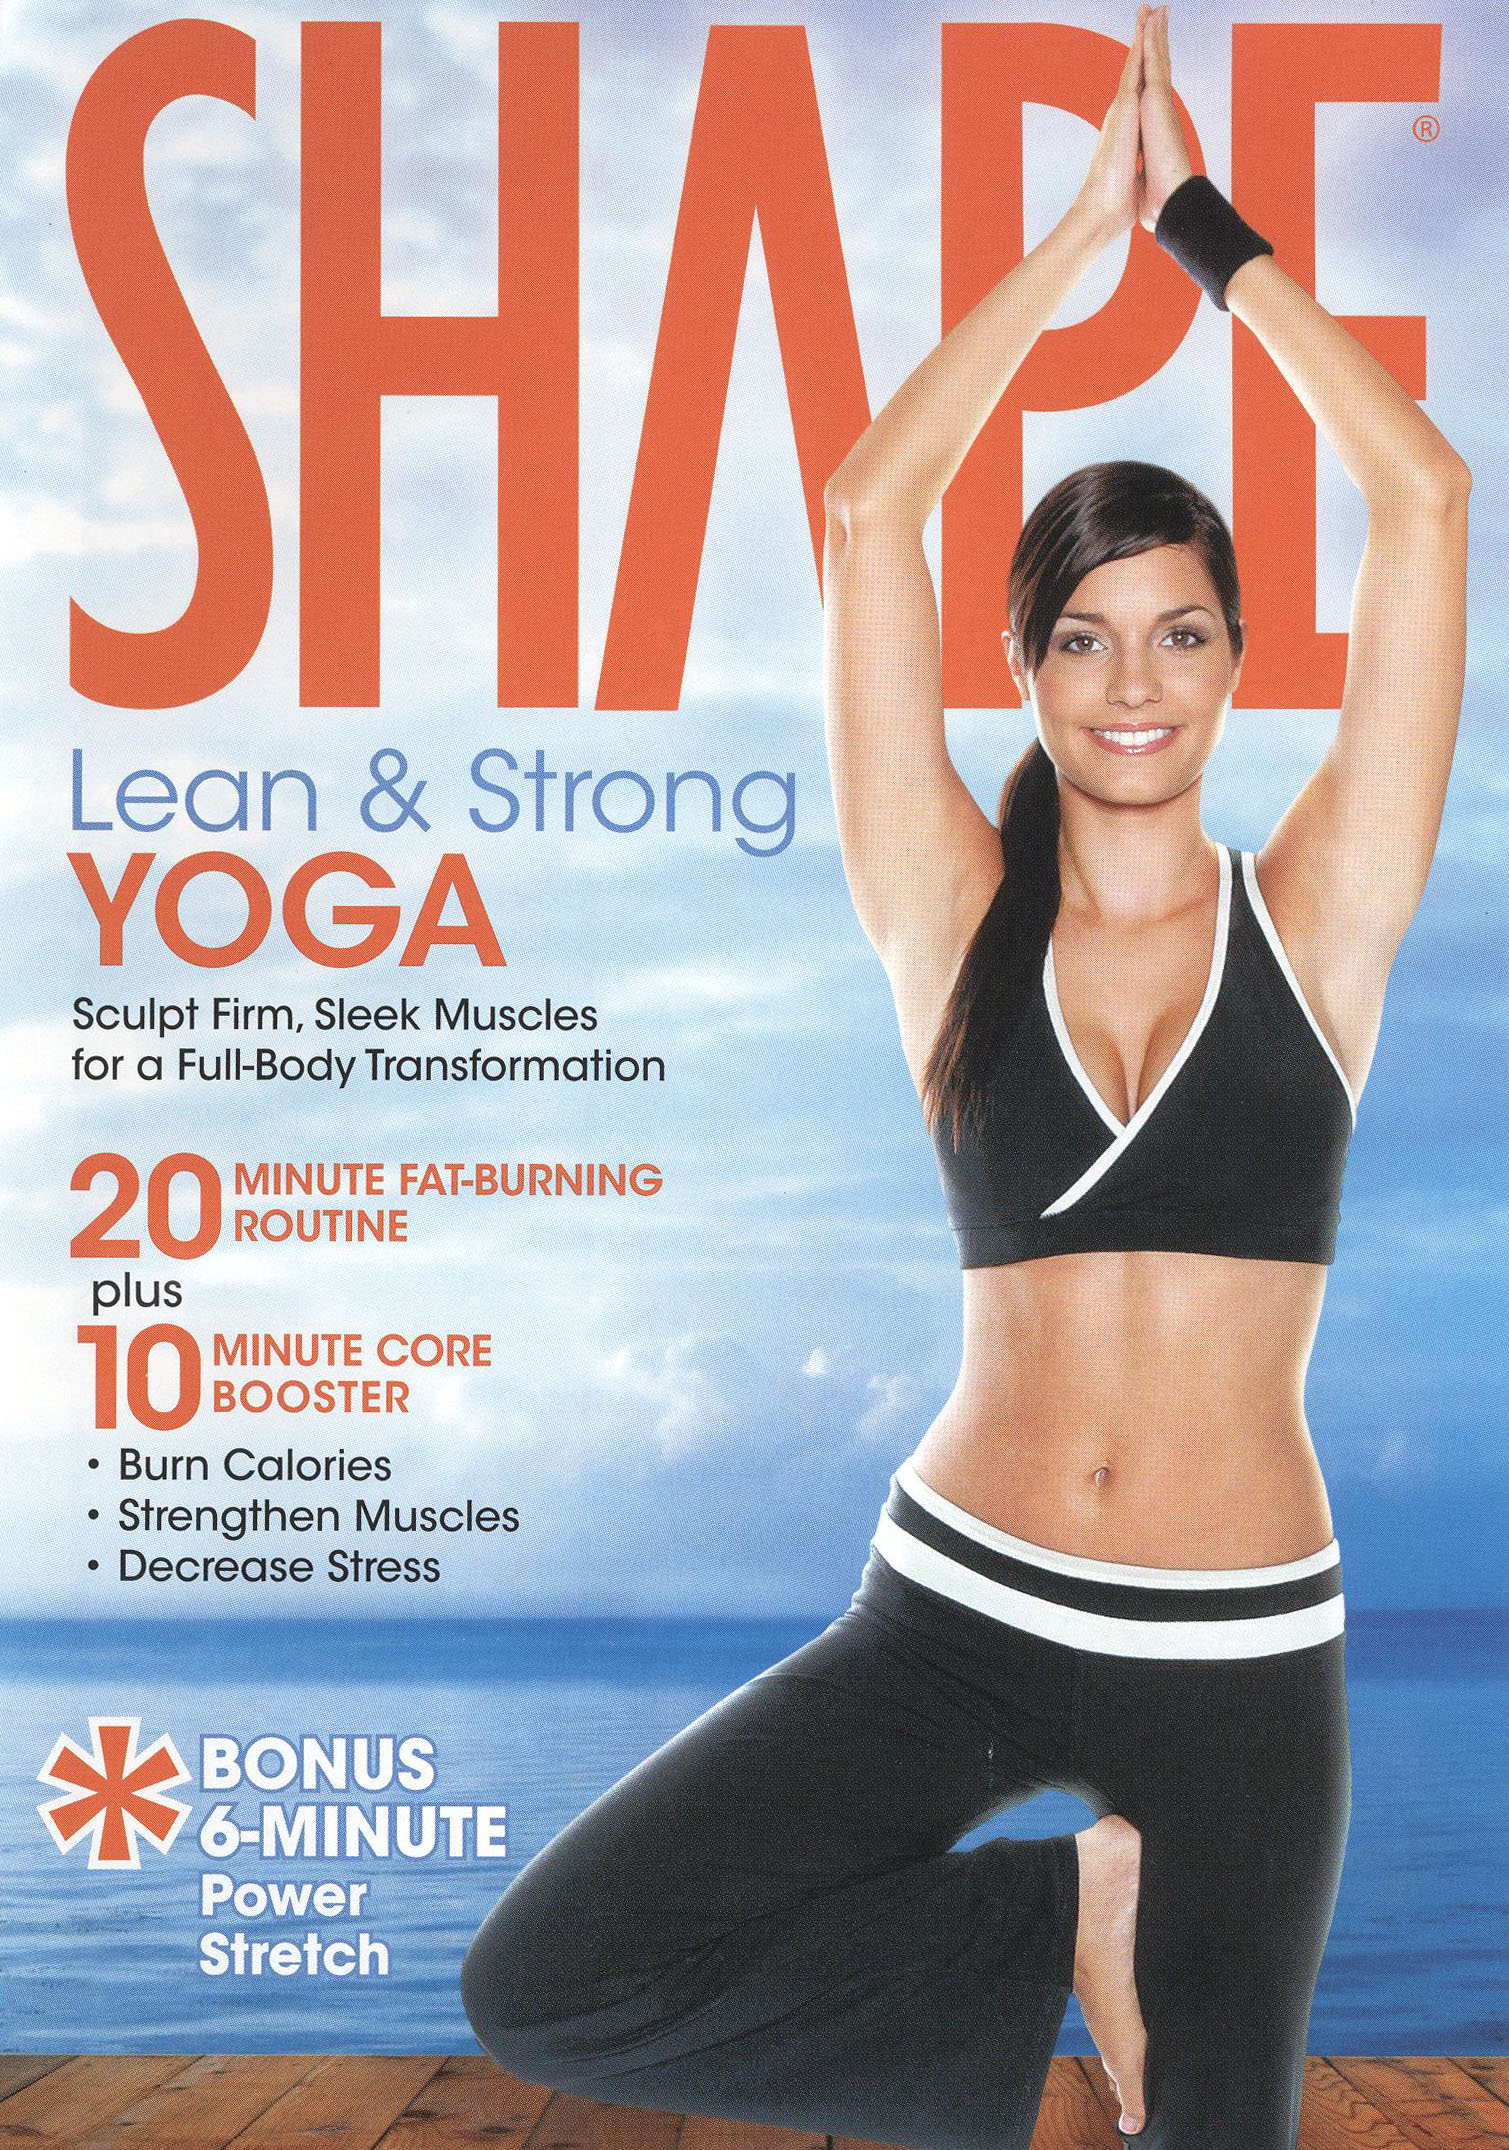 Shape: Long, Lean and Strong